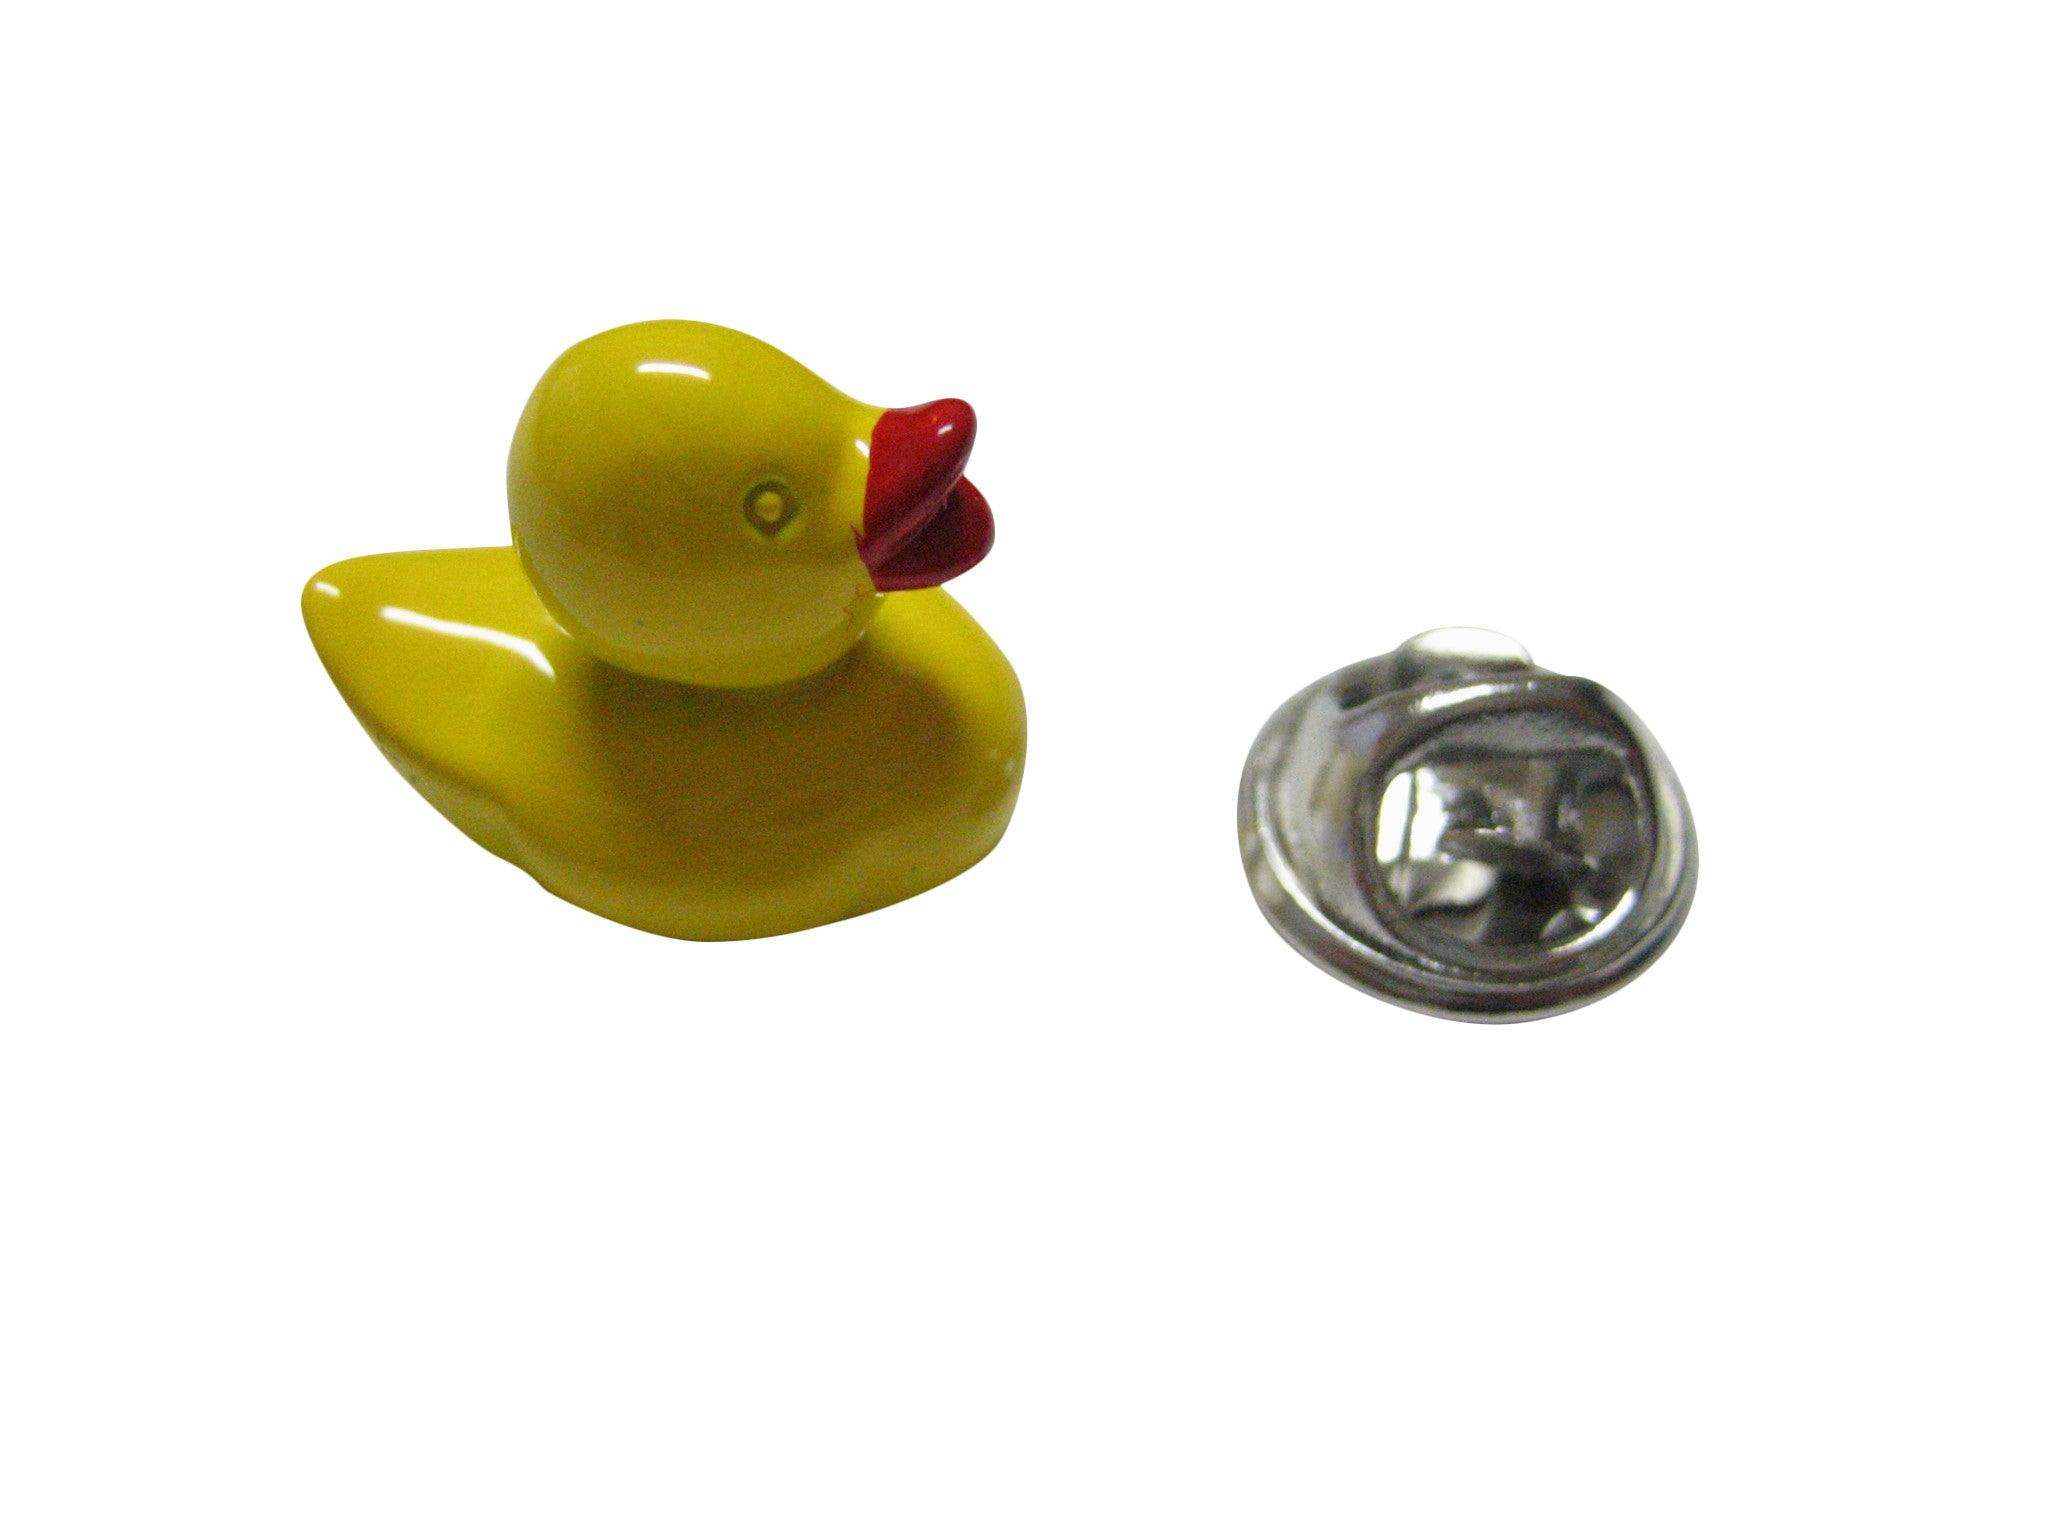 Yellow Rubber Ducky Lapel Pin